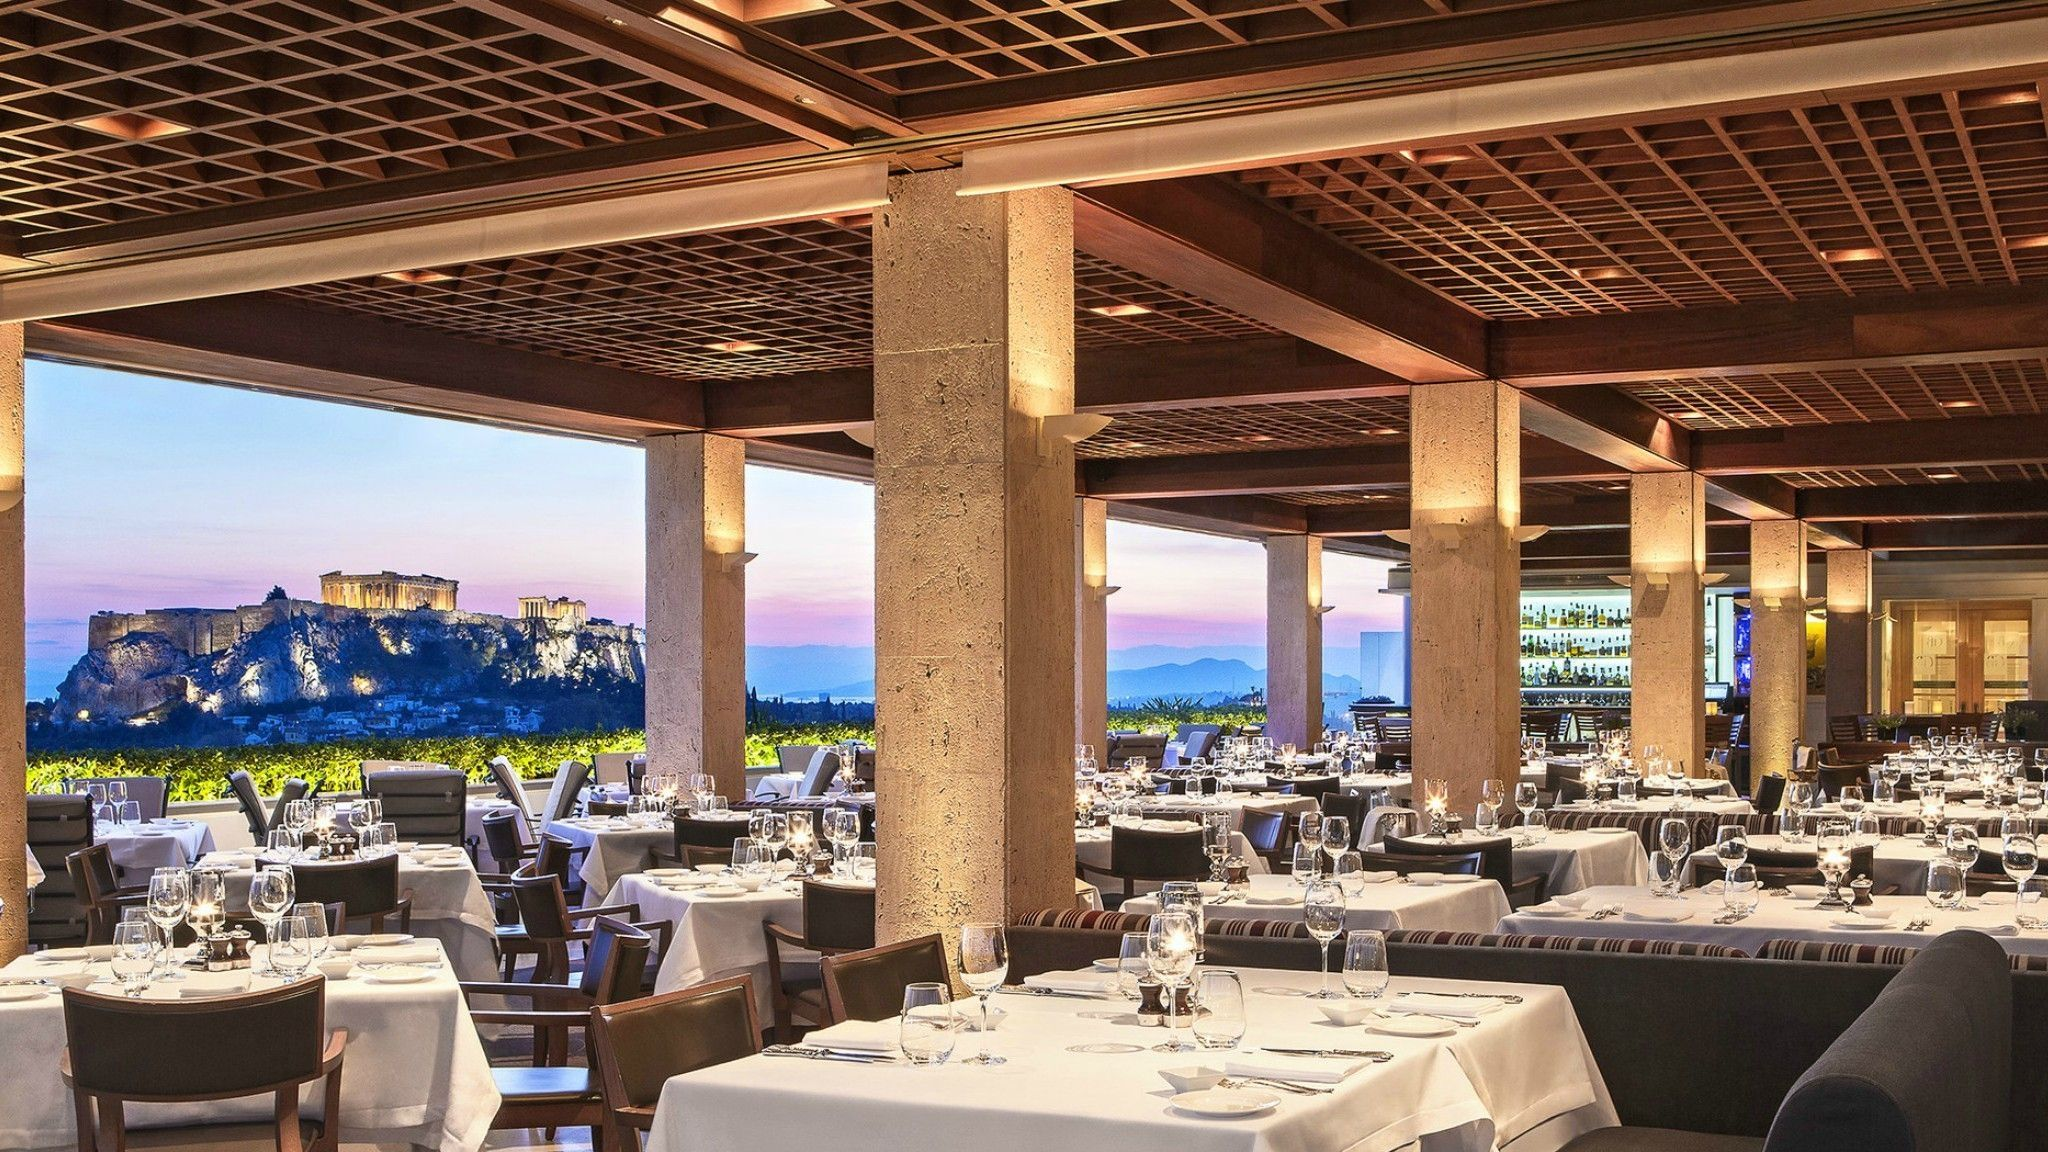 Romantic dinner at the GB Roof Garden Restaurant in the heart of Athens with amazing views to the Acropolis.